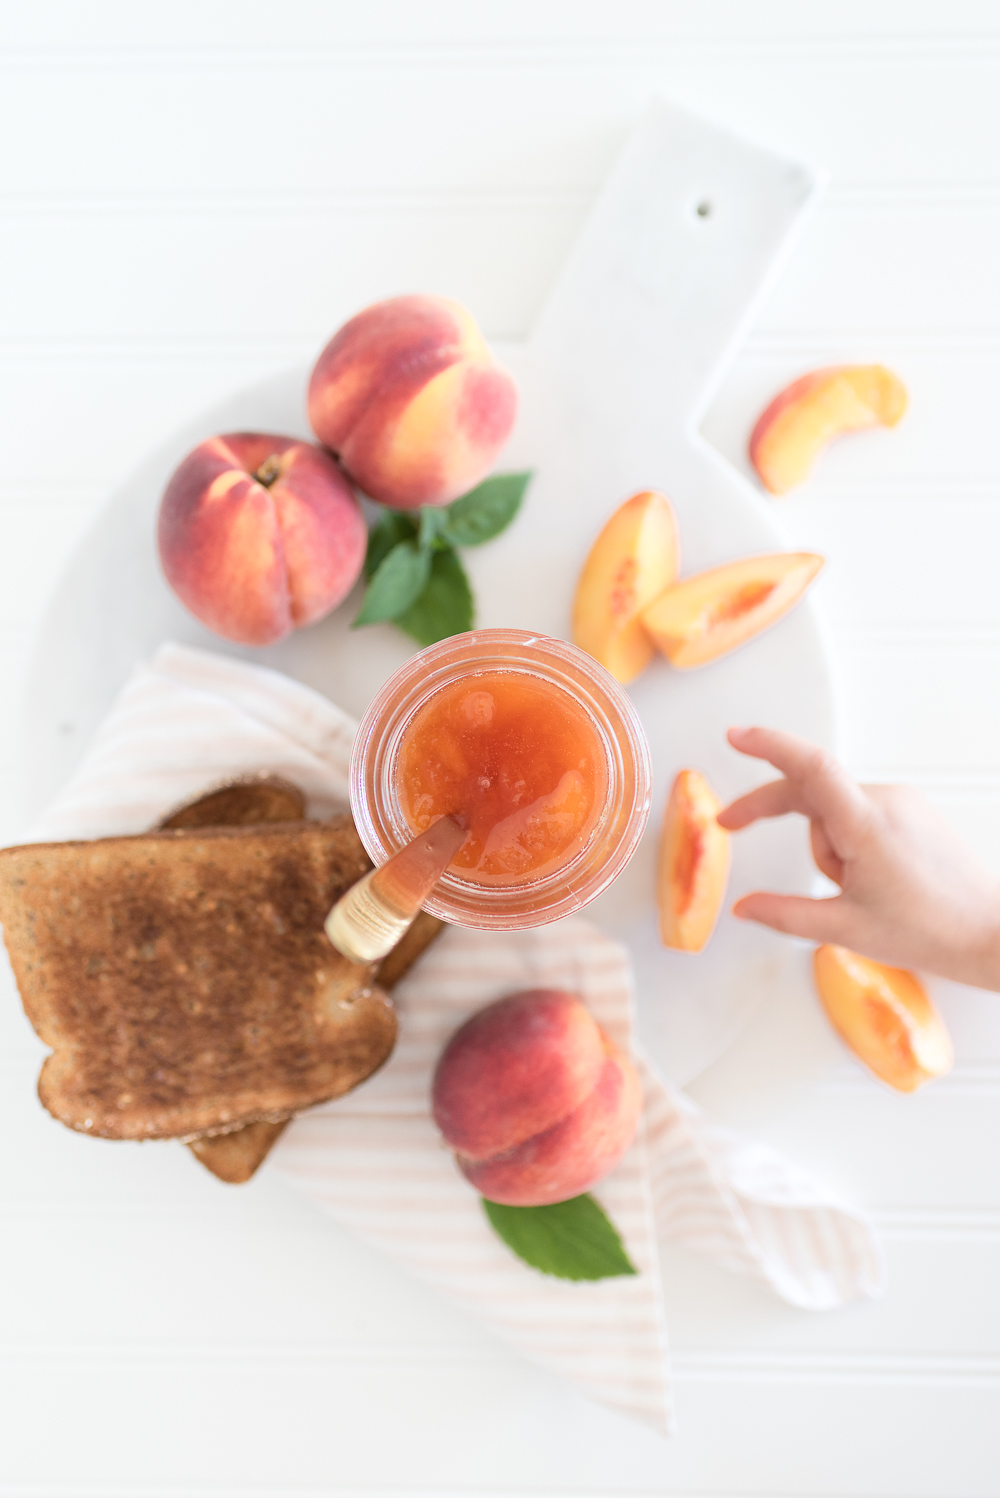 This small-batch peach jam recipe with a hint of spice is easy since it doesn't involve the traditional canning process.